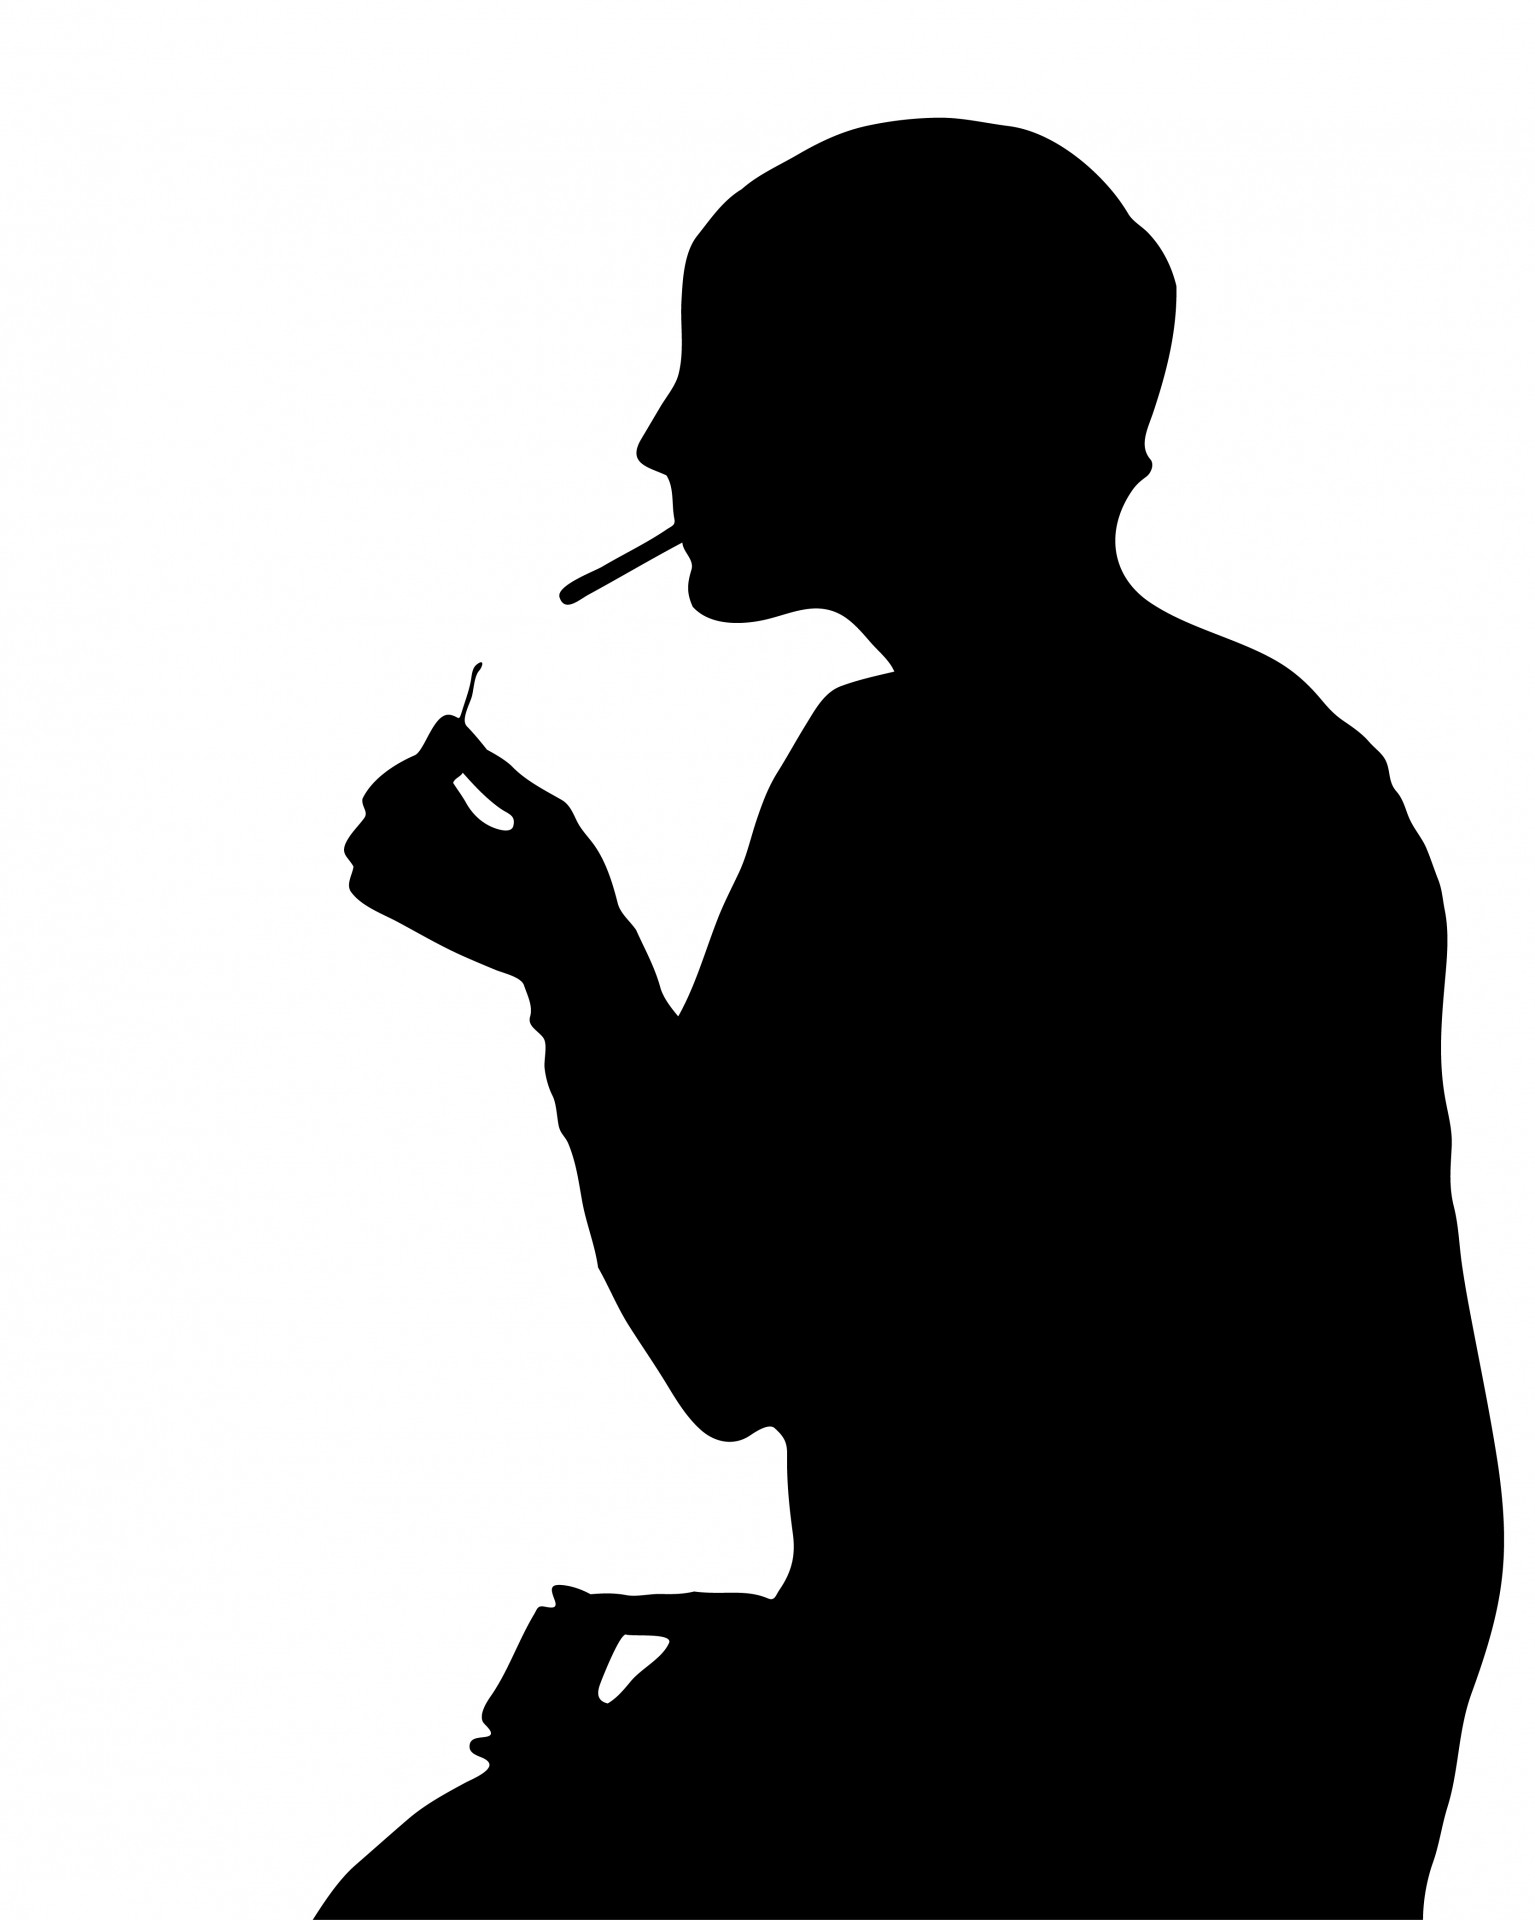 Smoking clipart silhouette Clipart Stock Smoking Clipart Silhouette